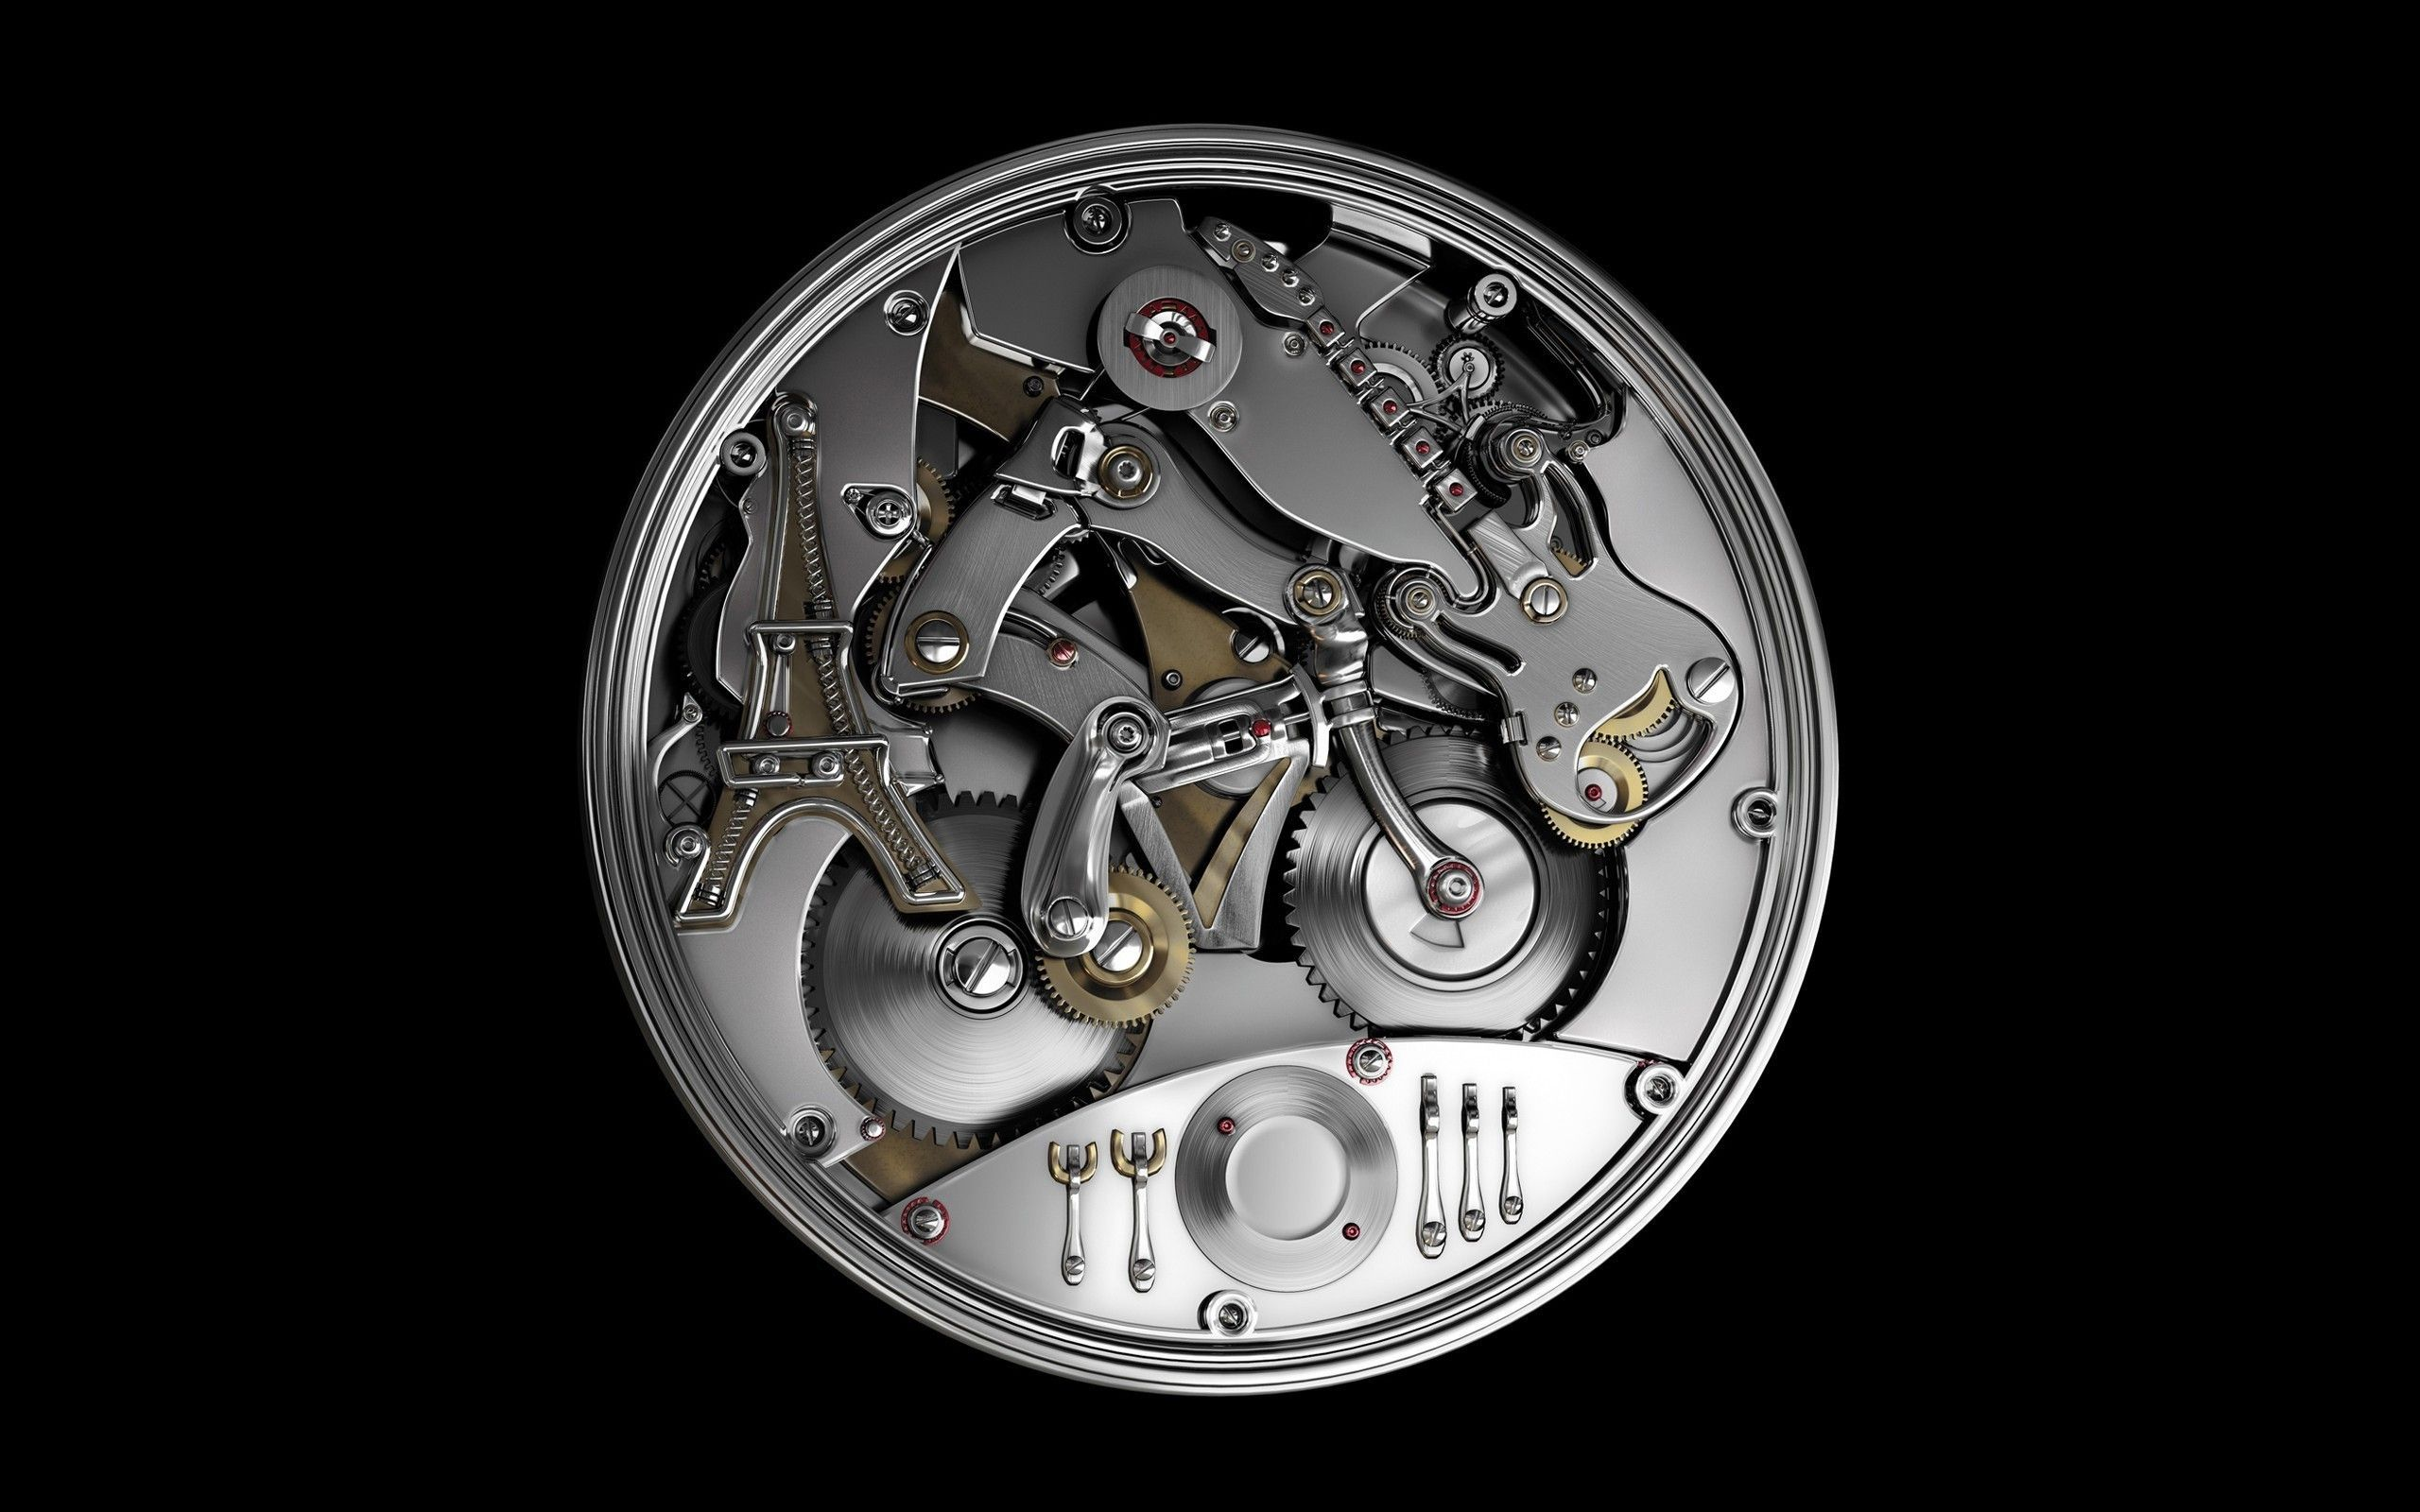 Mechanical Engineering Logos Wallpapers Backgrounds Images Crazy Mechanical Engineering Logo Mechanical Engineering Artistic Wallpaper